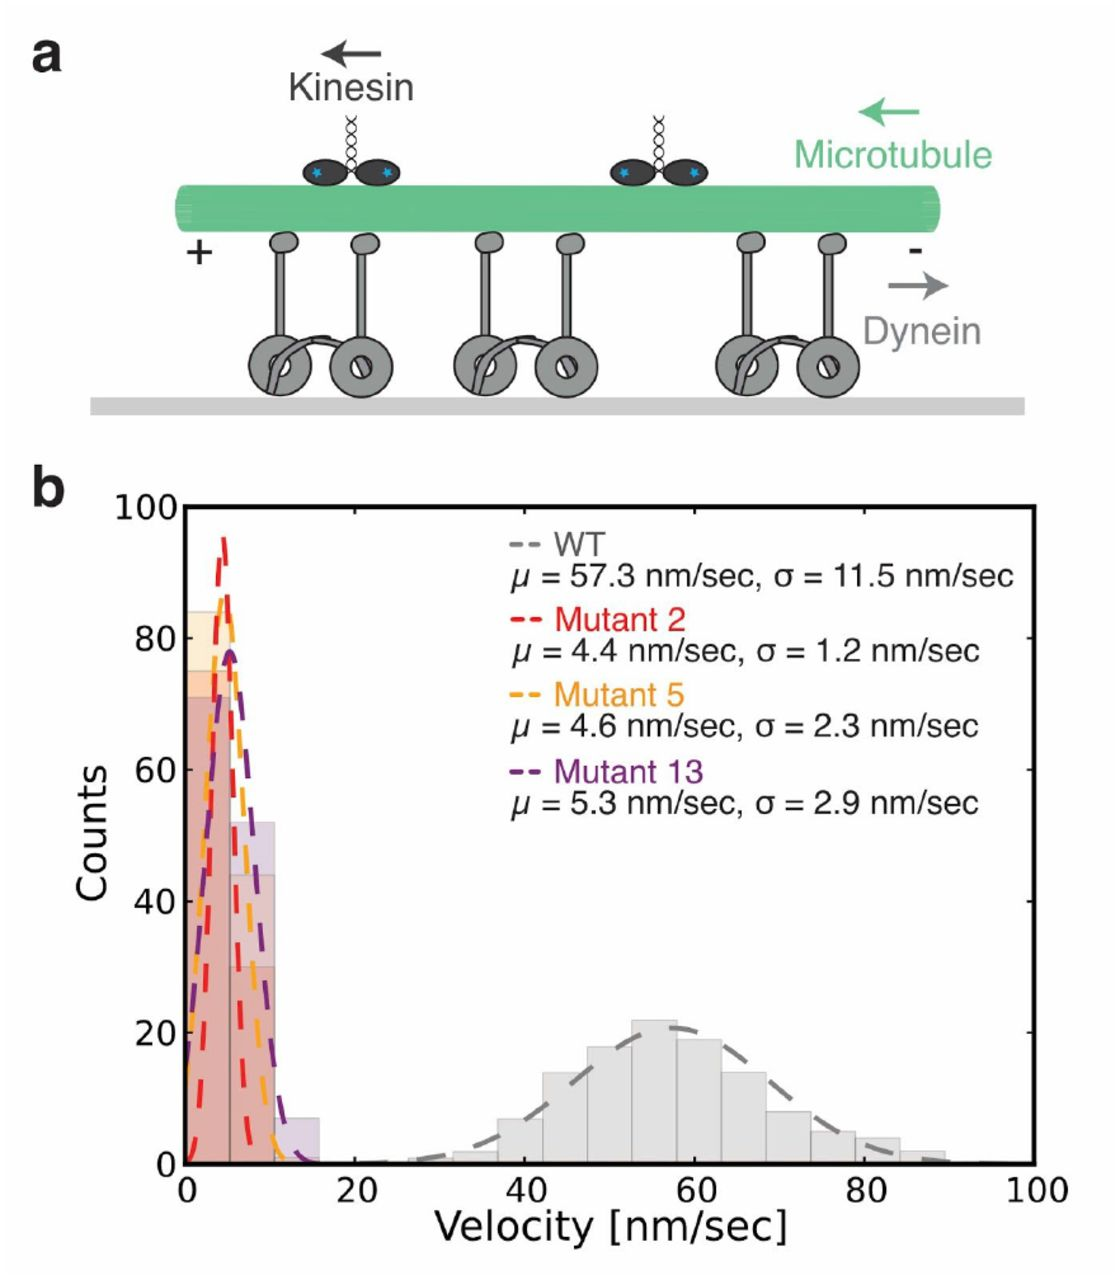 Stalk-mediated communication in the dynein motor domain